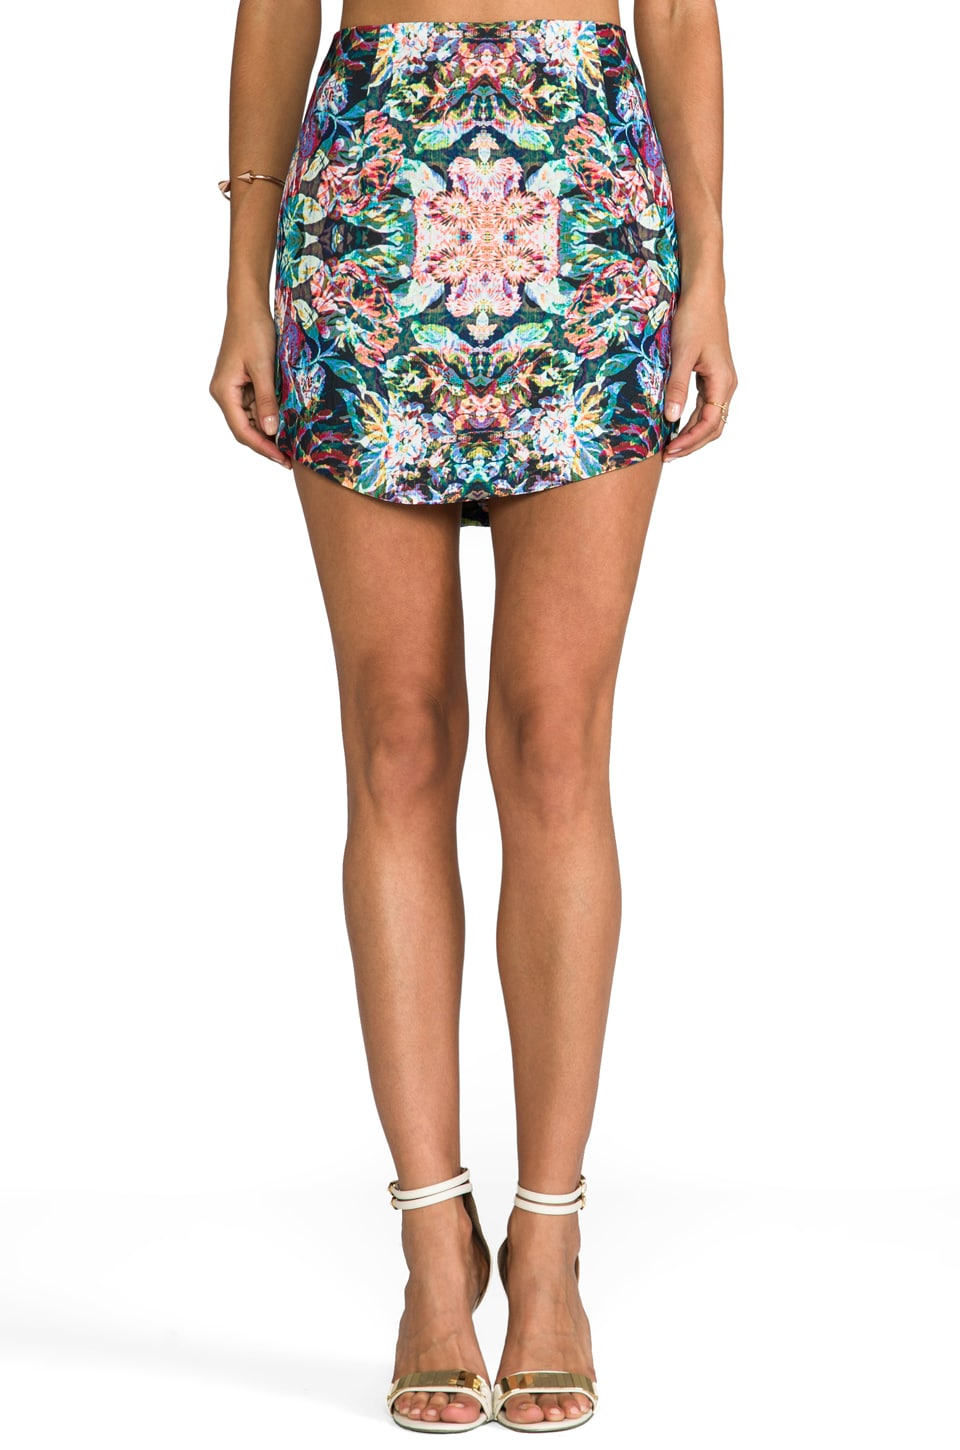 keepsake Rebel Heart Skirt in Wild Flower Print